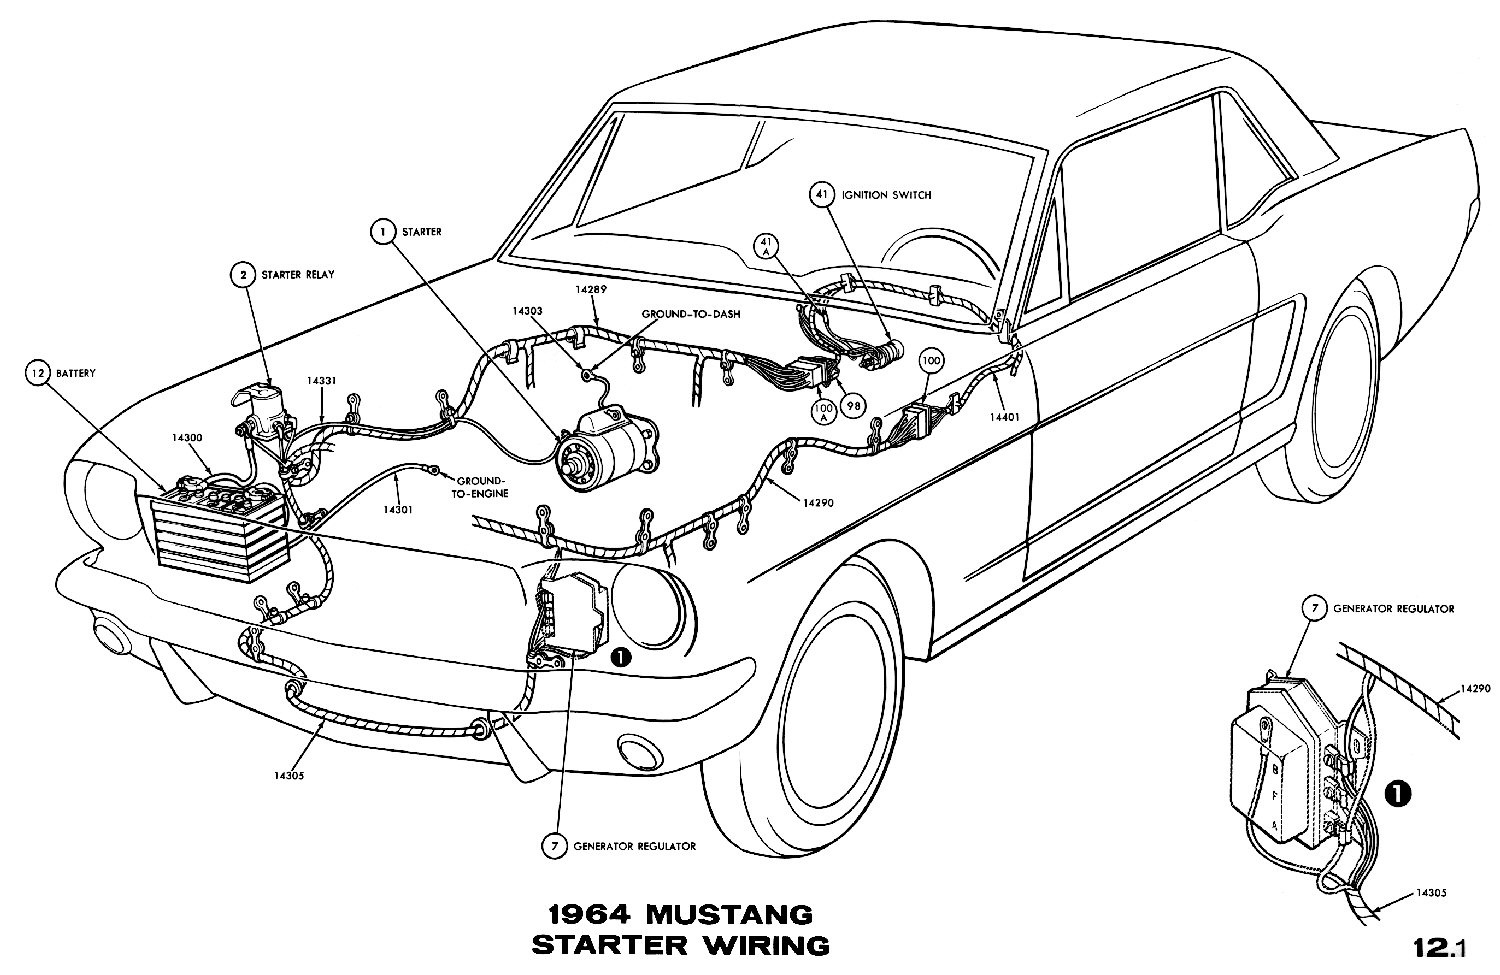 1964 Mustang Wiring Diagrams Average Joe Restoration 1948 Ford Generator Diagram Sm1964d Starter Pictorial Or Schematic